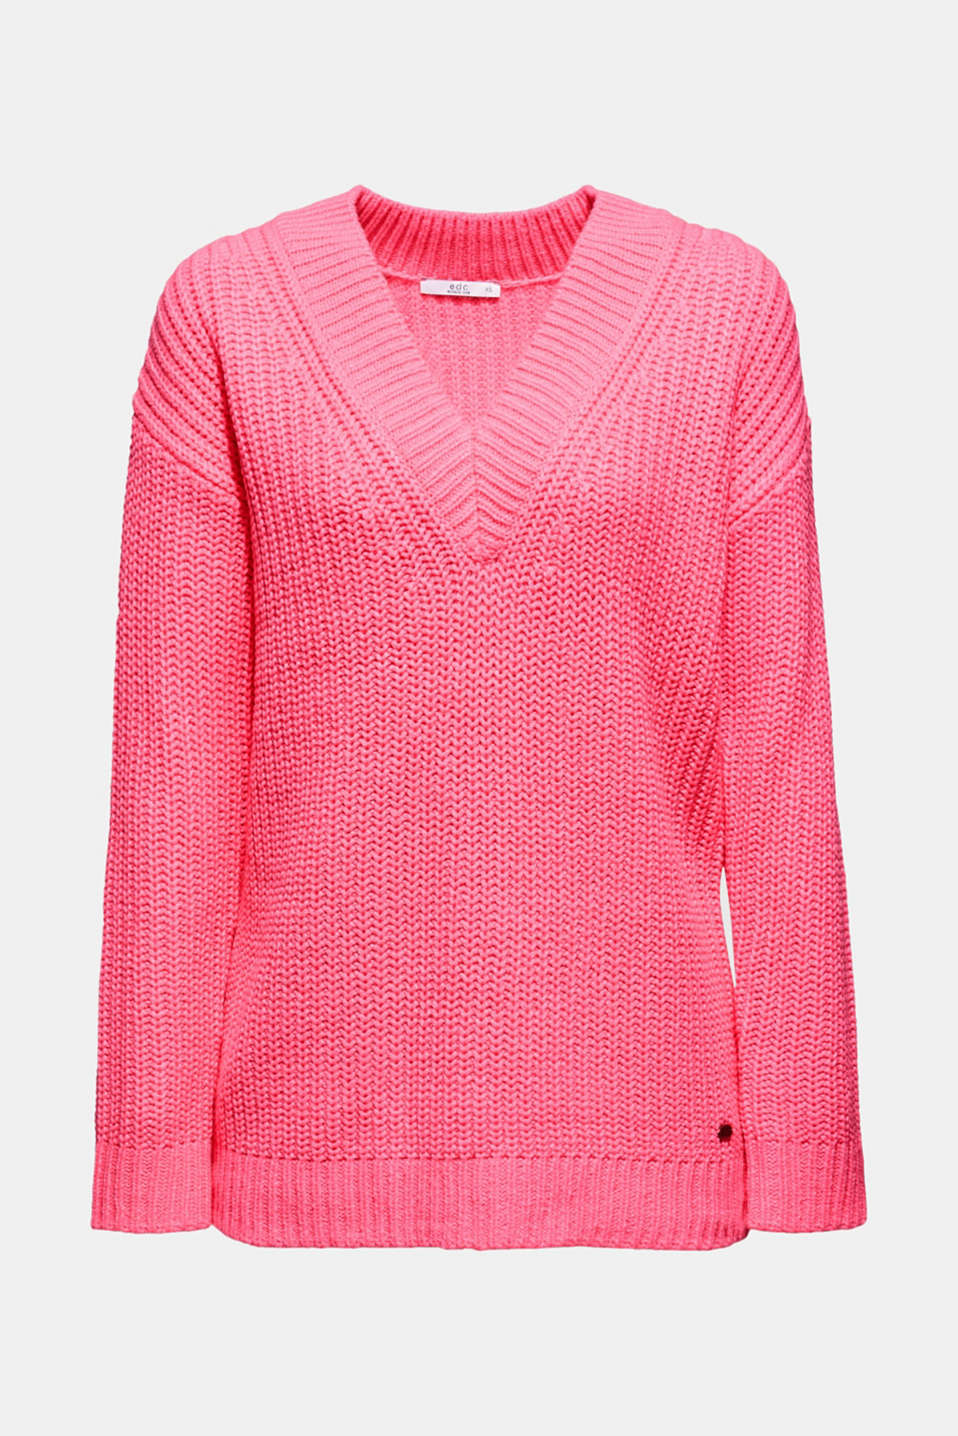 Sweaters, PINK FUCHSIA, detail image number 6